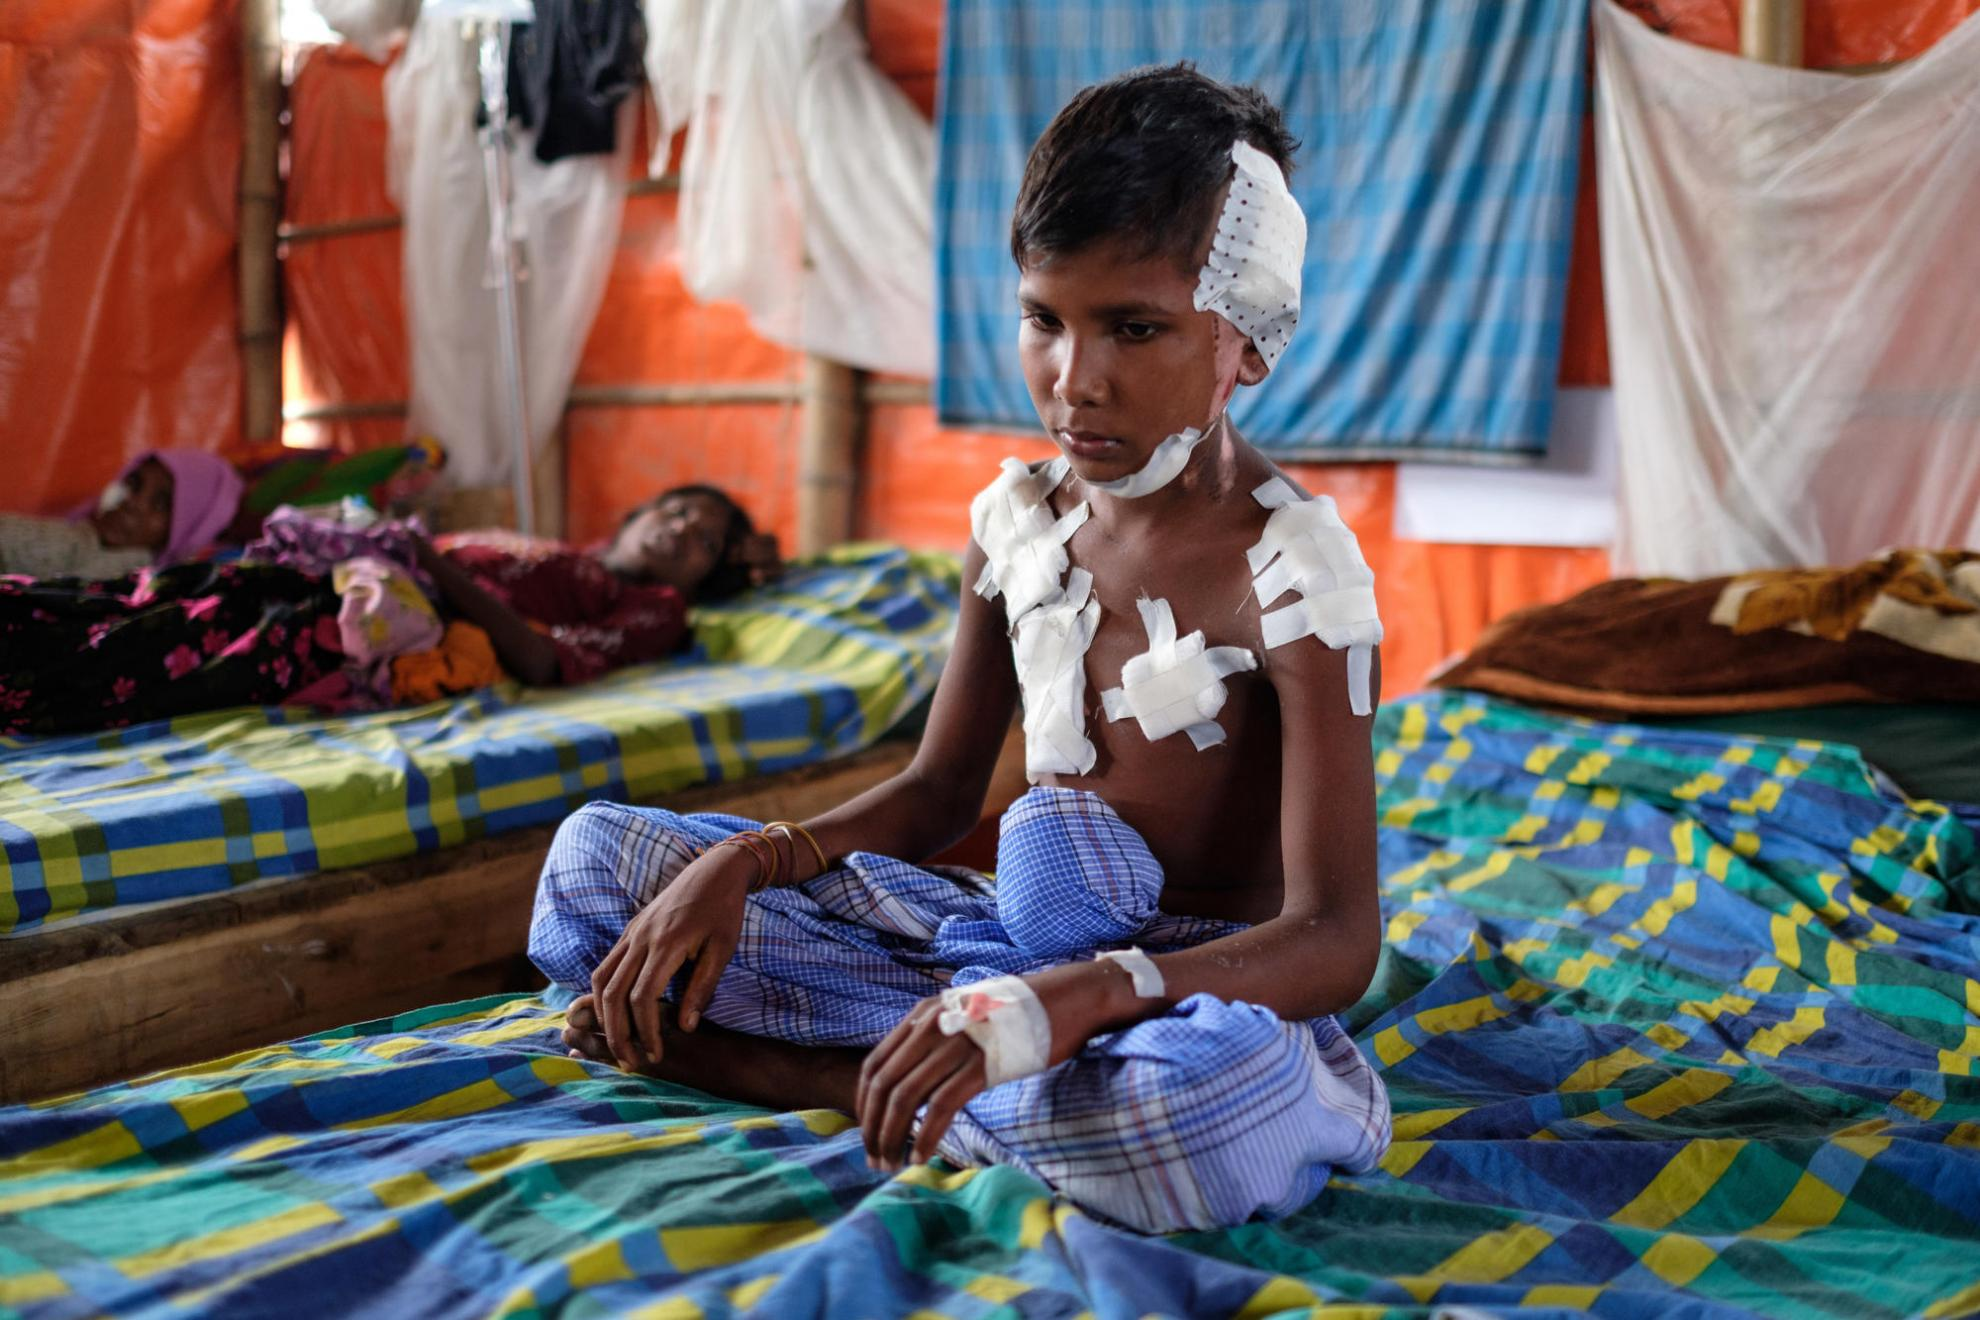 September 2017: A young boy, injured in the violence, sits on a bed in MSF's Kutupalong medical centre